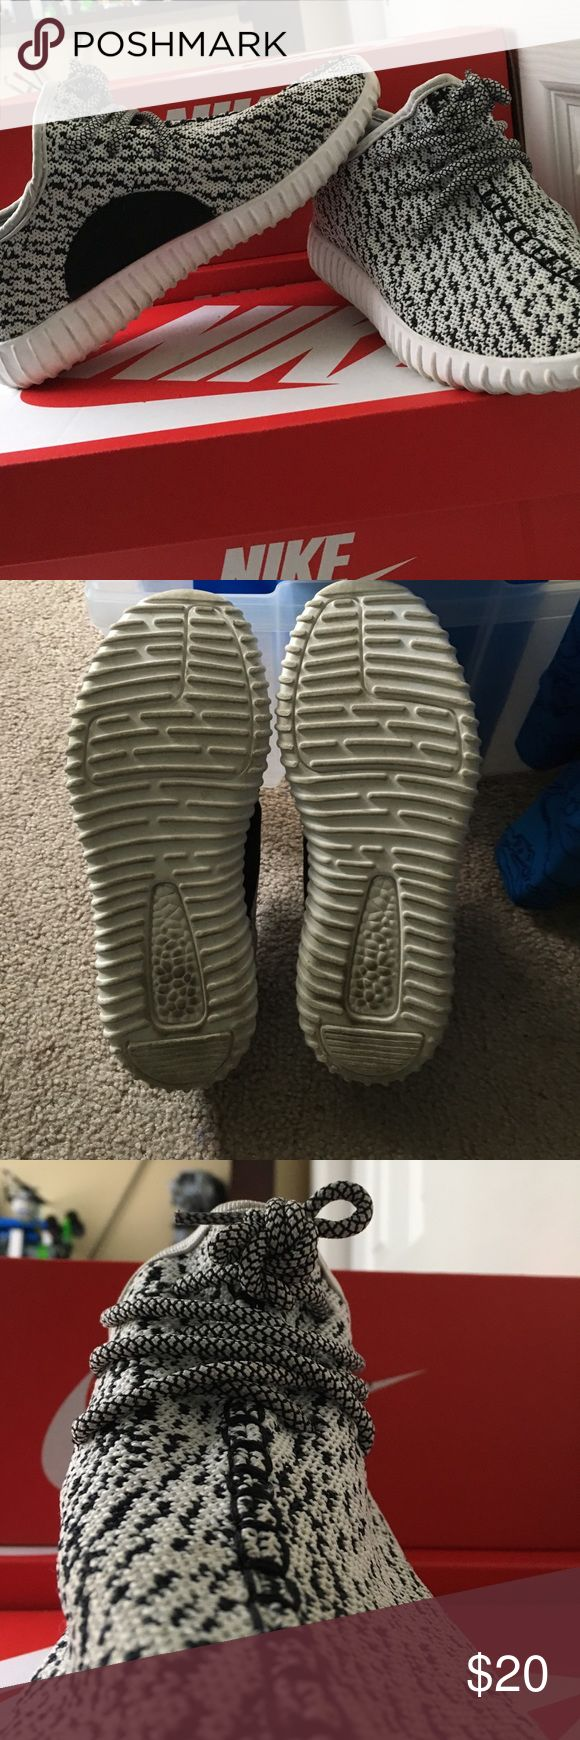 "Fake Yeezy Boost 350 ""Turtle Dove"" Worn once and is very comfy. Looks a lot like the original design of the yeezy by Kanye West. The original price was 35 dollars. Shoes Sneakers"